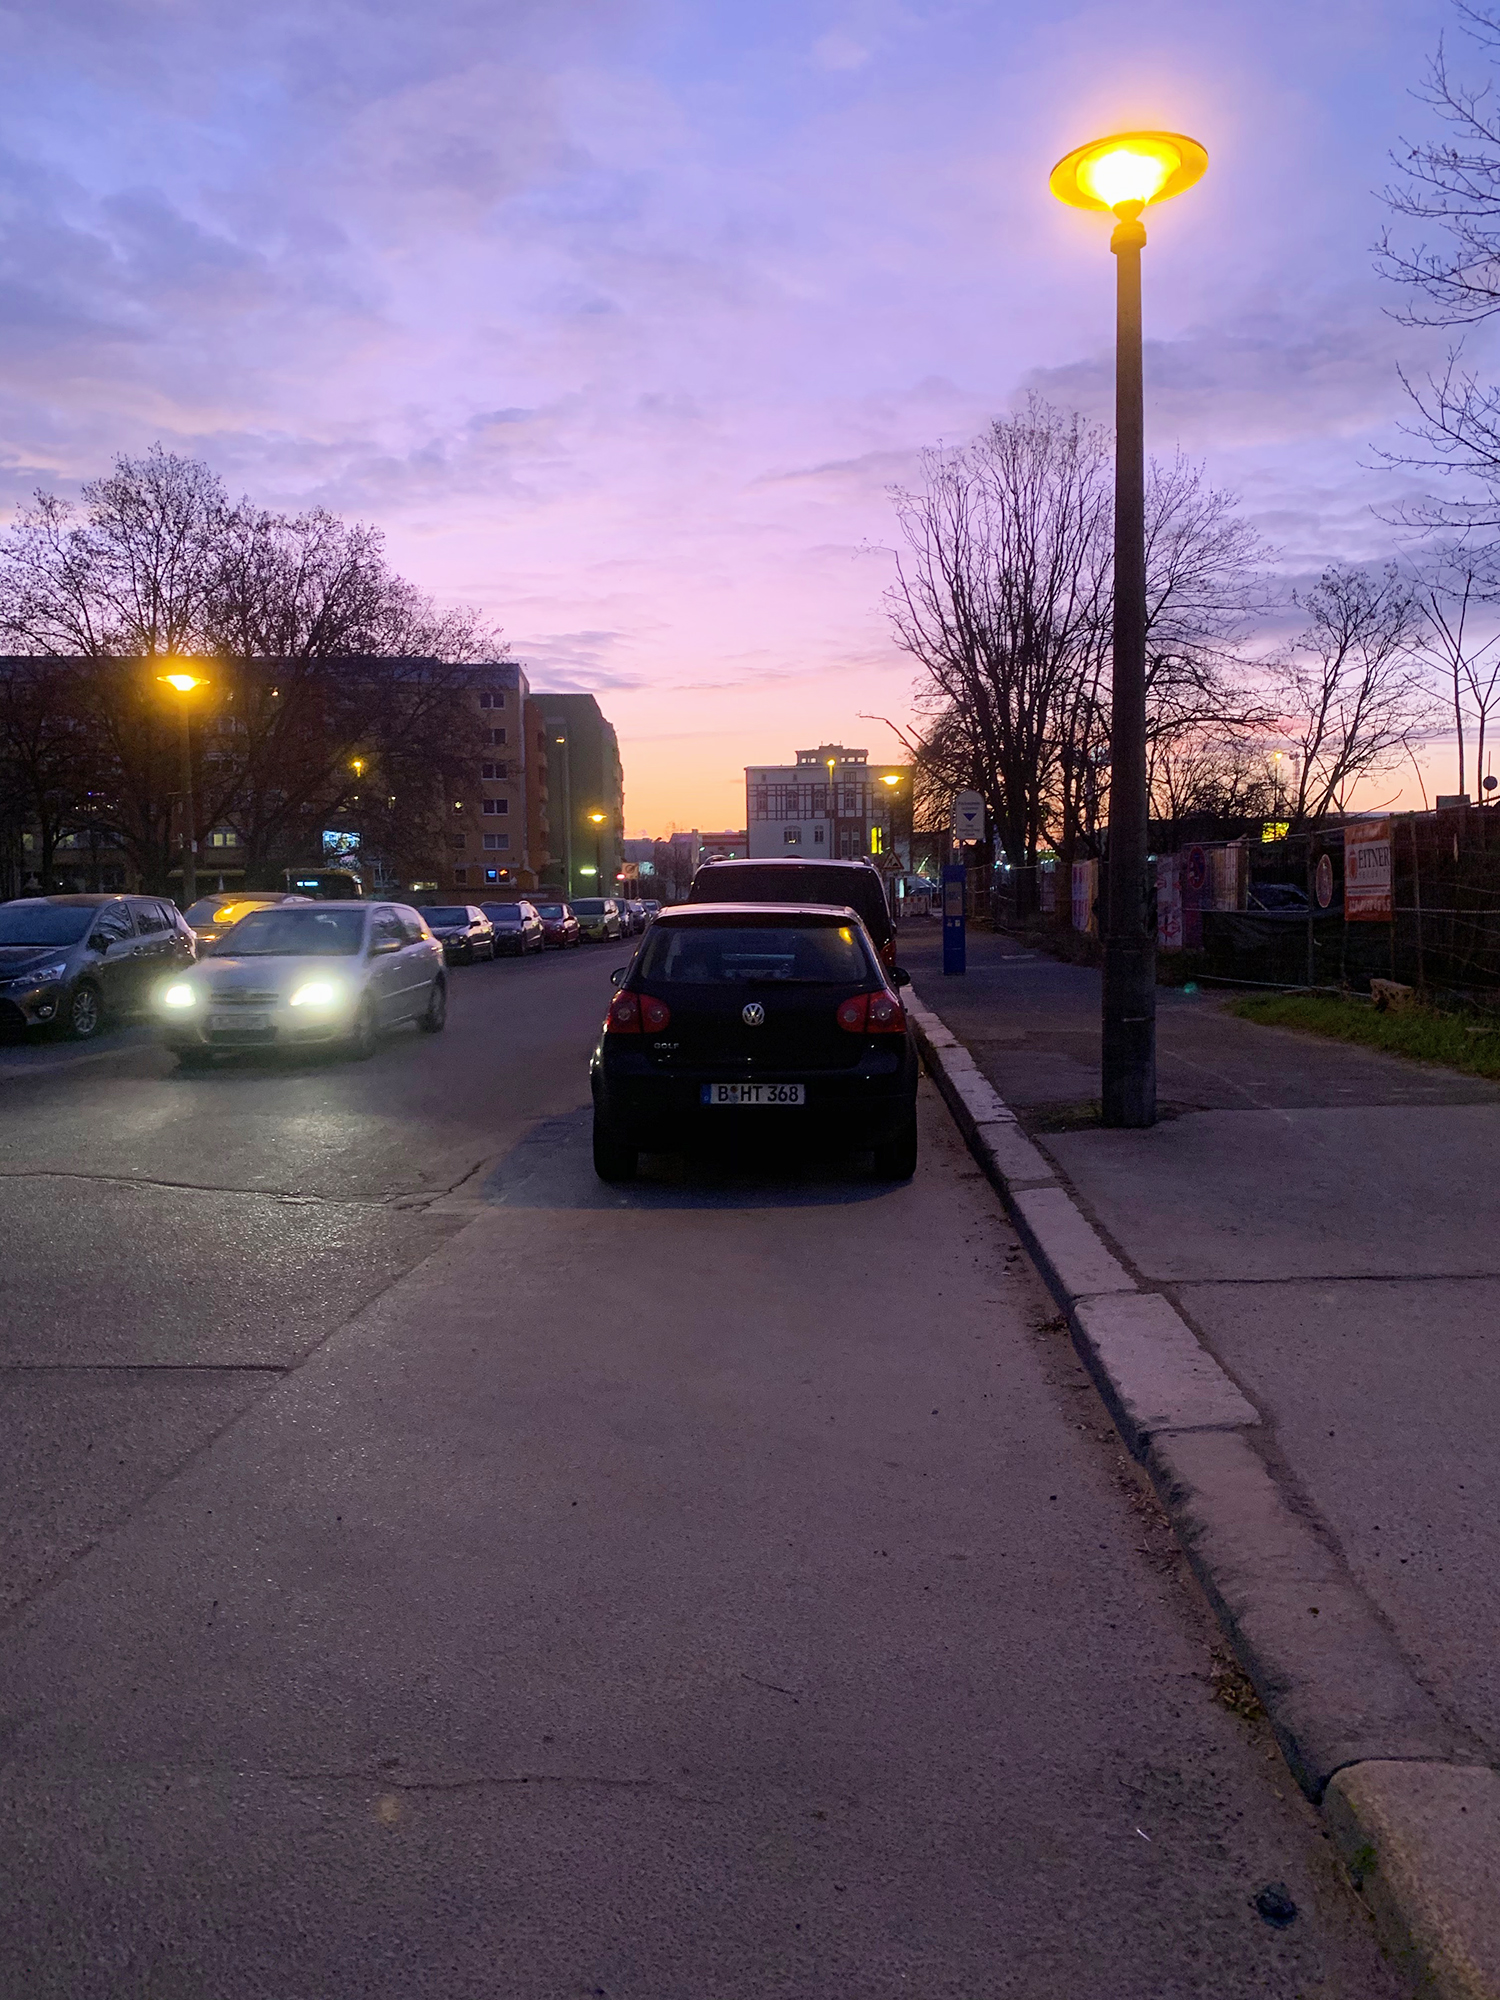 The sunrise peeking out over the buildings with cars parked on the road.